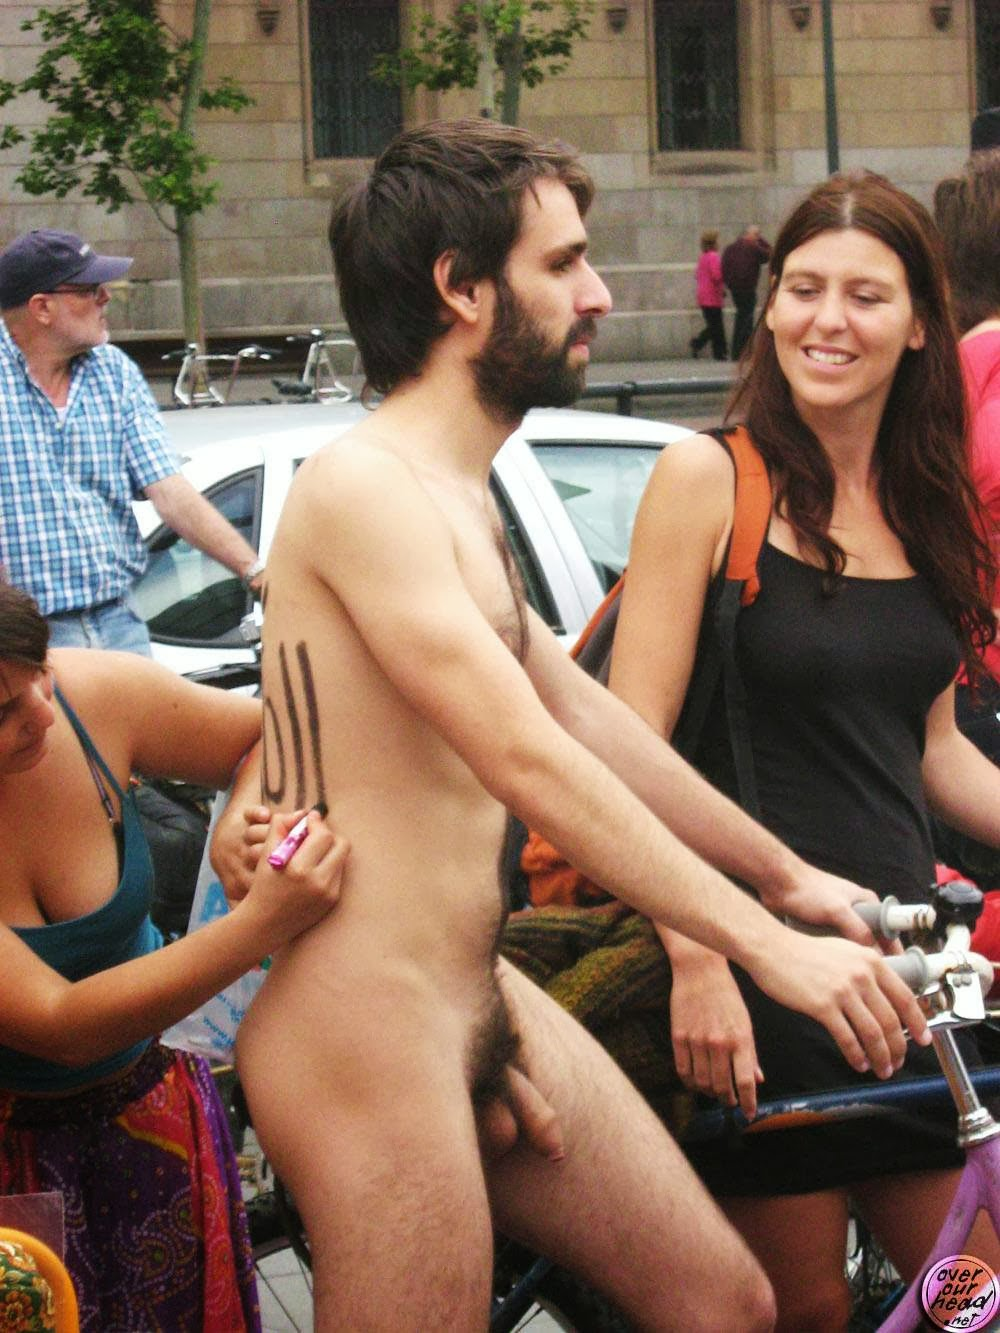 Girls having naked sex with boys in public 15